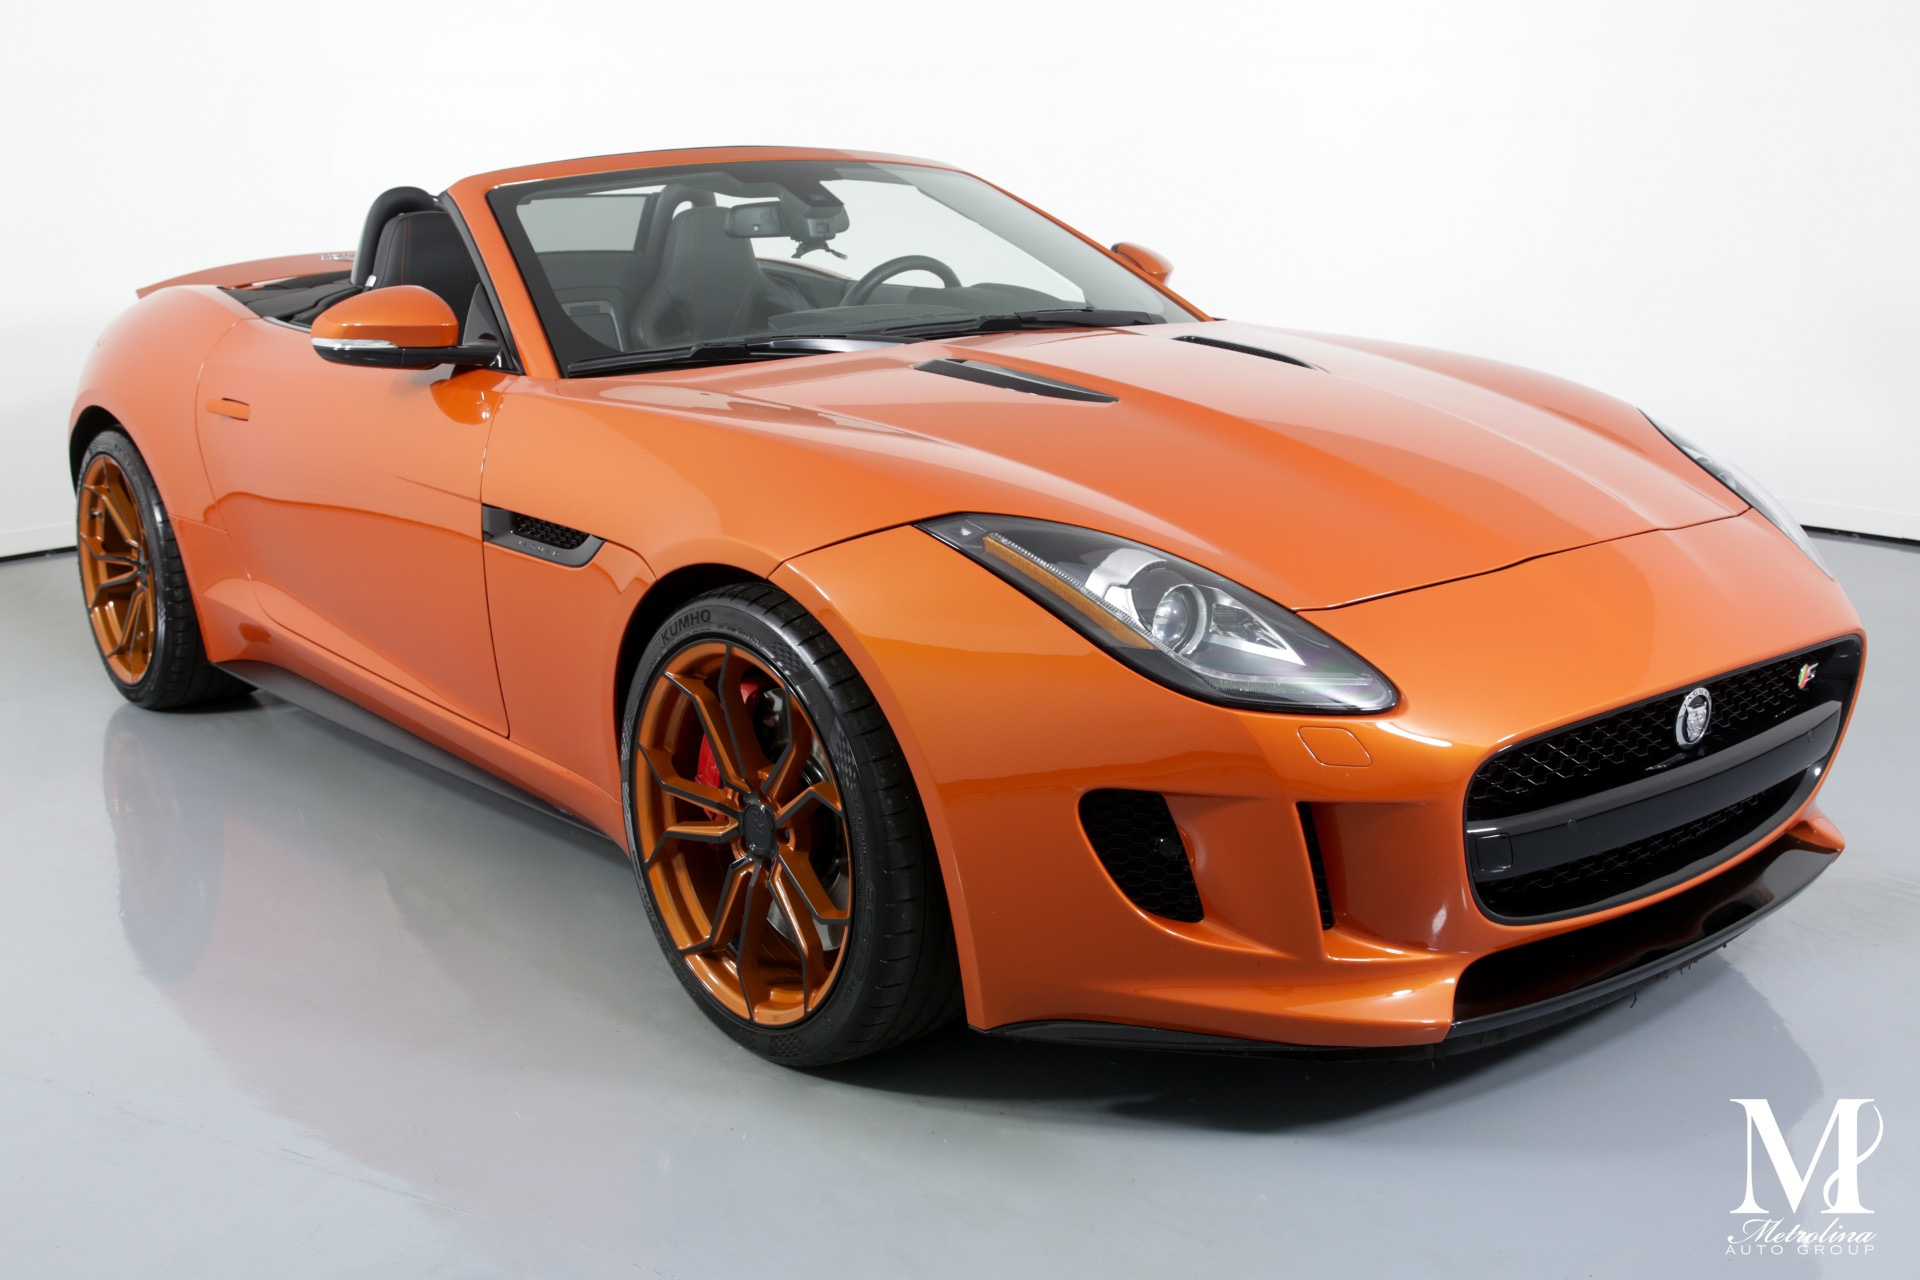 Used 2014 Jaguar F-TYPE V8 S for sale $40,996 at Metrolina Auto Group in Charlotte NC 28217 - 3